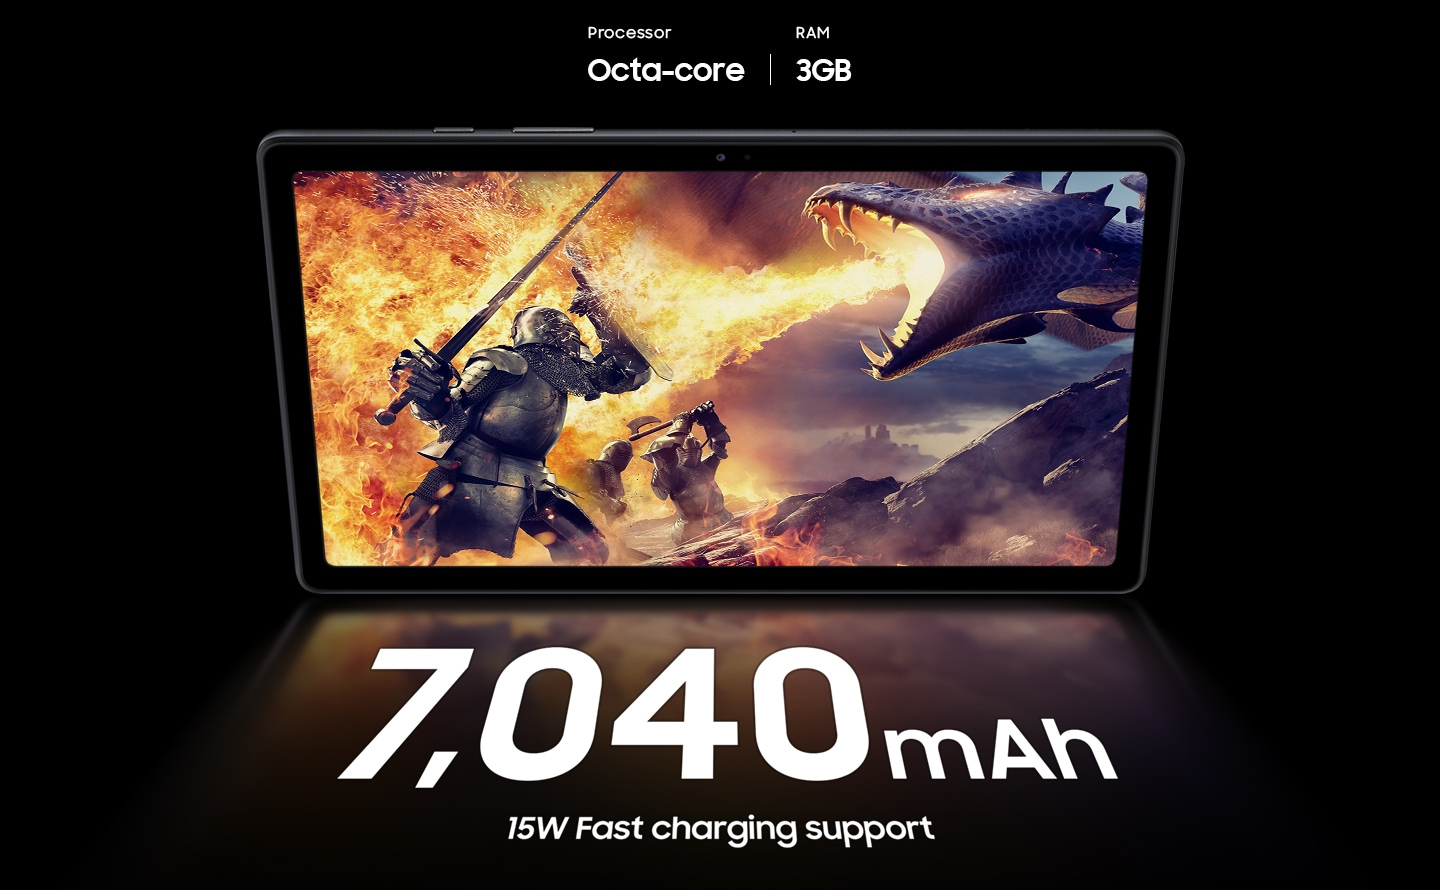 A scene from an action-adventure game is displayed on Galaxy Tab A7 with the texts Octa-core processor and 3GB RAM above it.